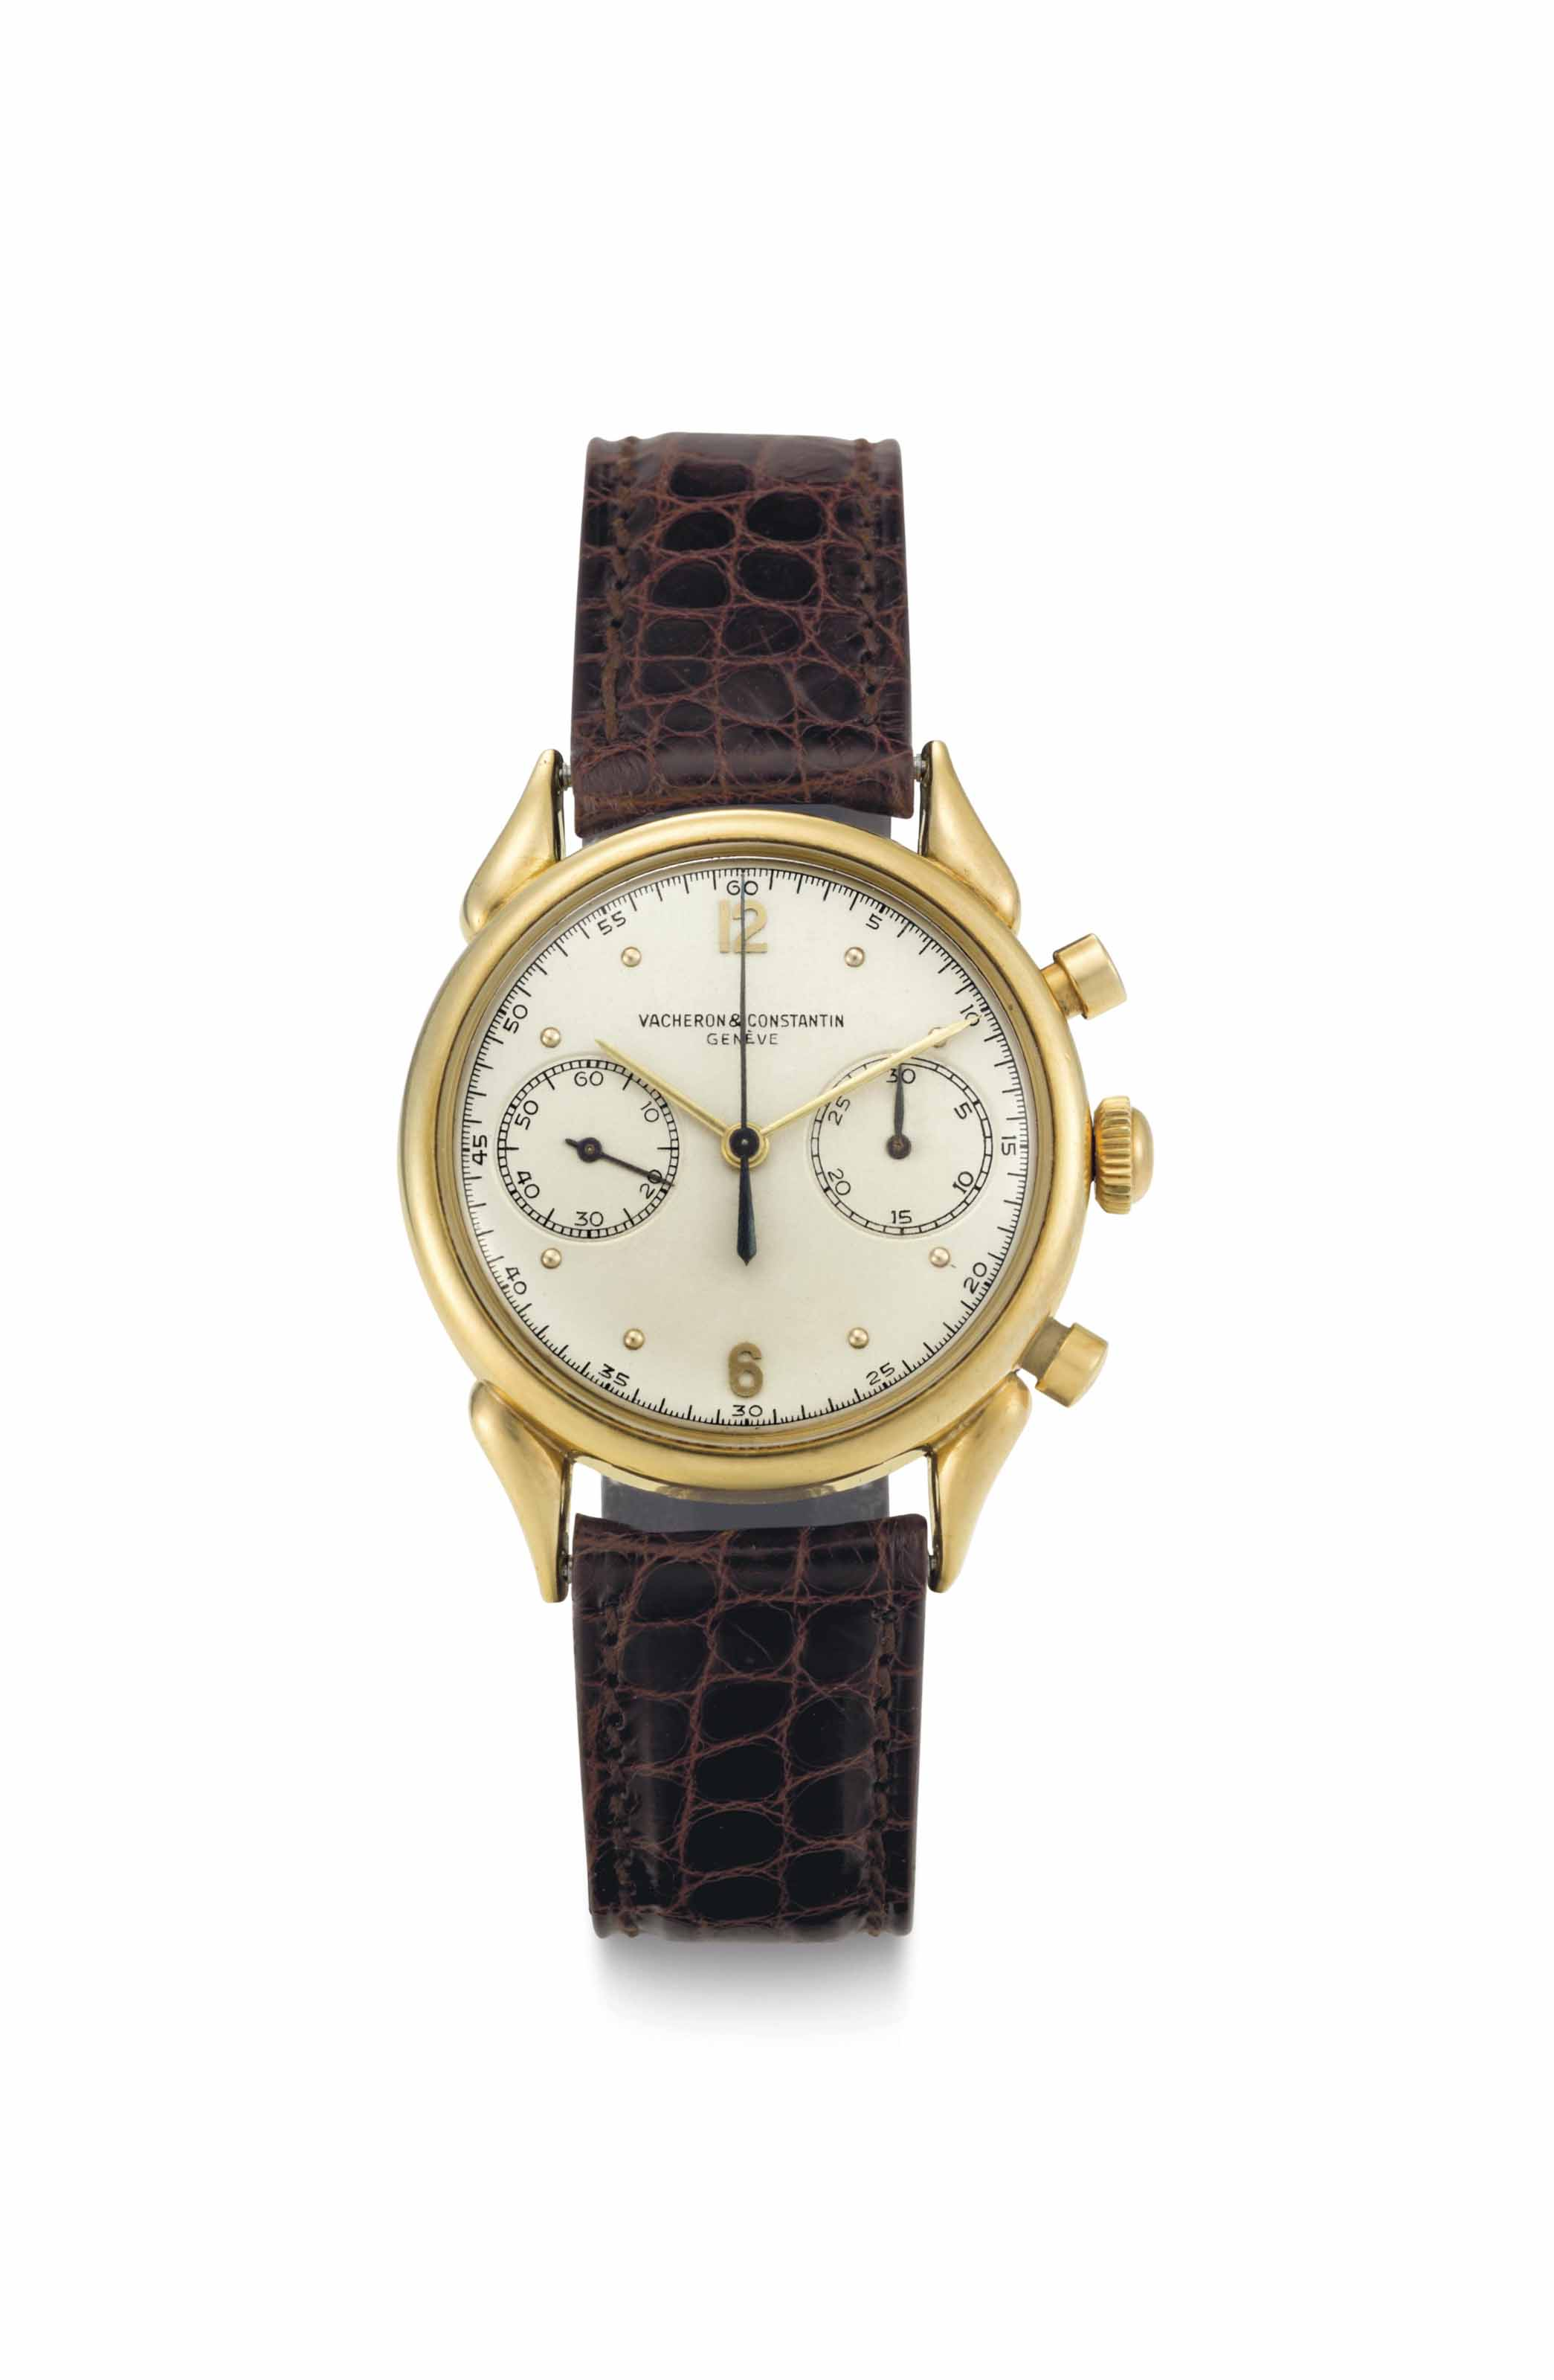 Vacheron Constantin. A Very Fine and Rare Chronograph Wristwatch with Unusual Lugs